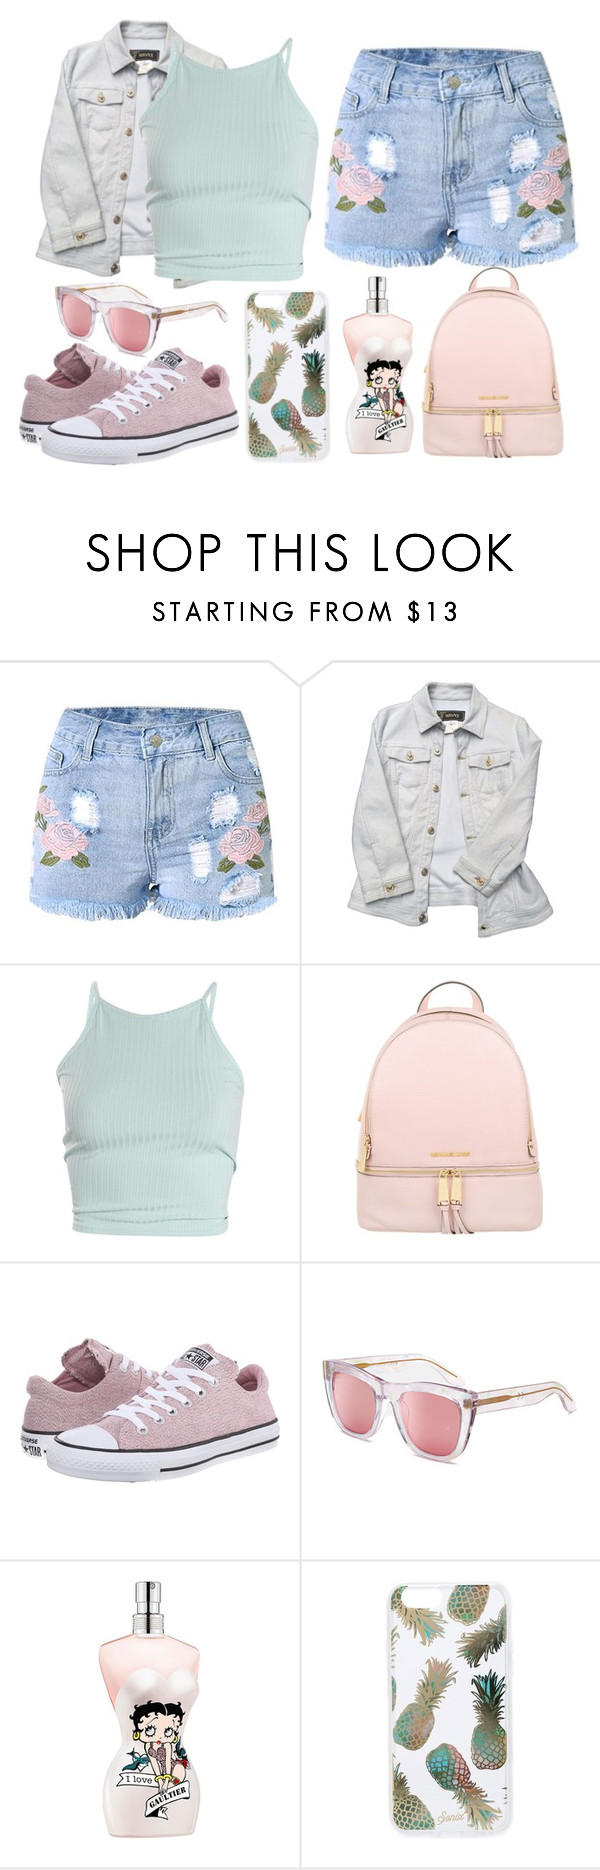 """Sunny days"" by nicolesynth ❤ liked on Polyvore featuring Versace, Michael Kors, Converse, RetroSuperFuture, Jean-Paul Gaultier and Sonix"